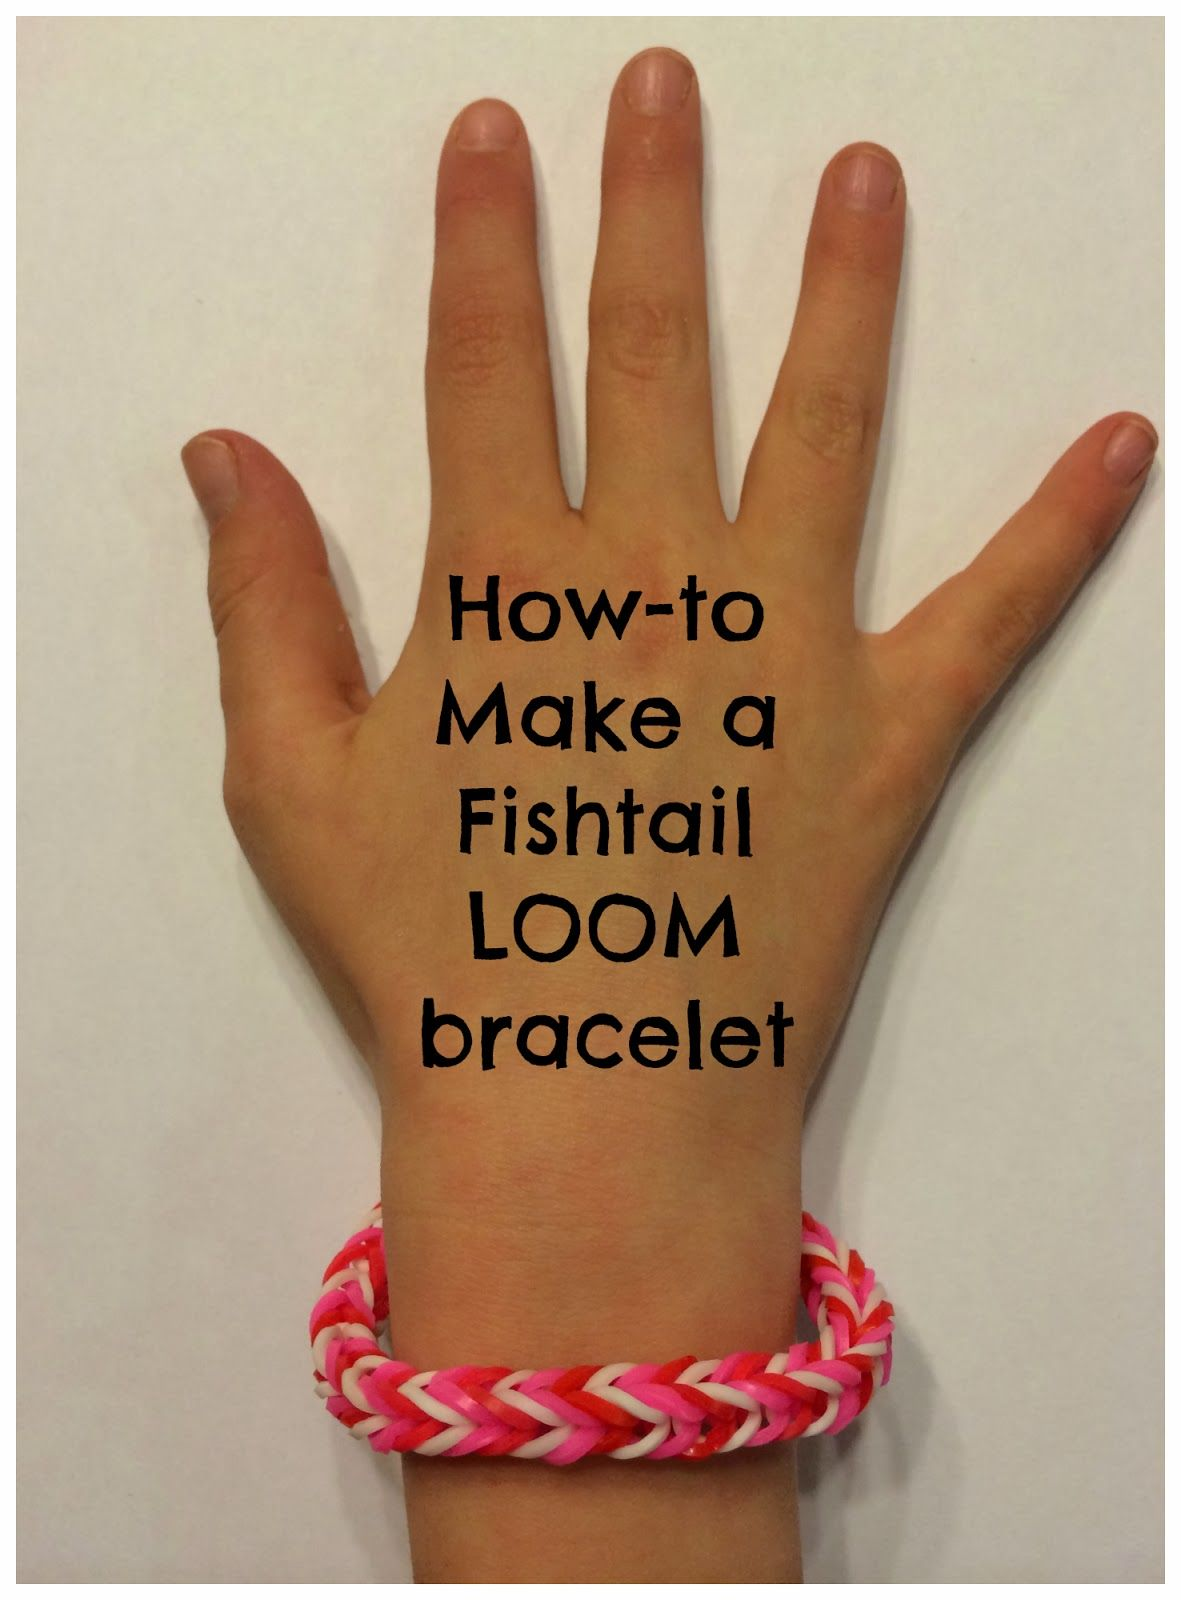 How To Make A Fishtail #loom Bracelet Step By Step Photo Directions